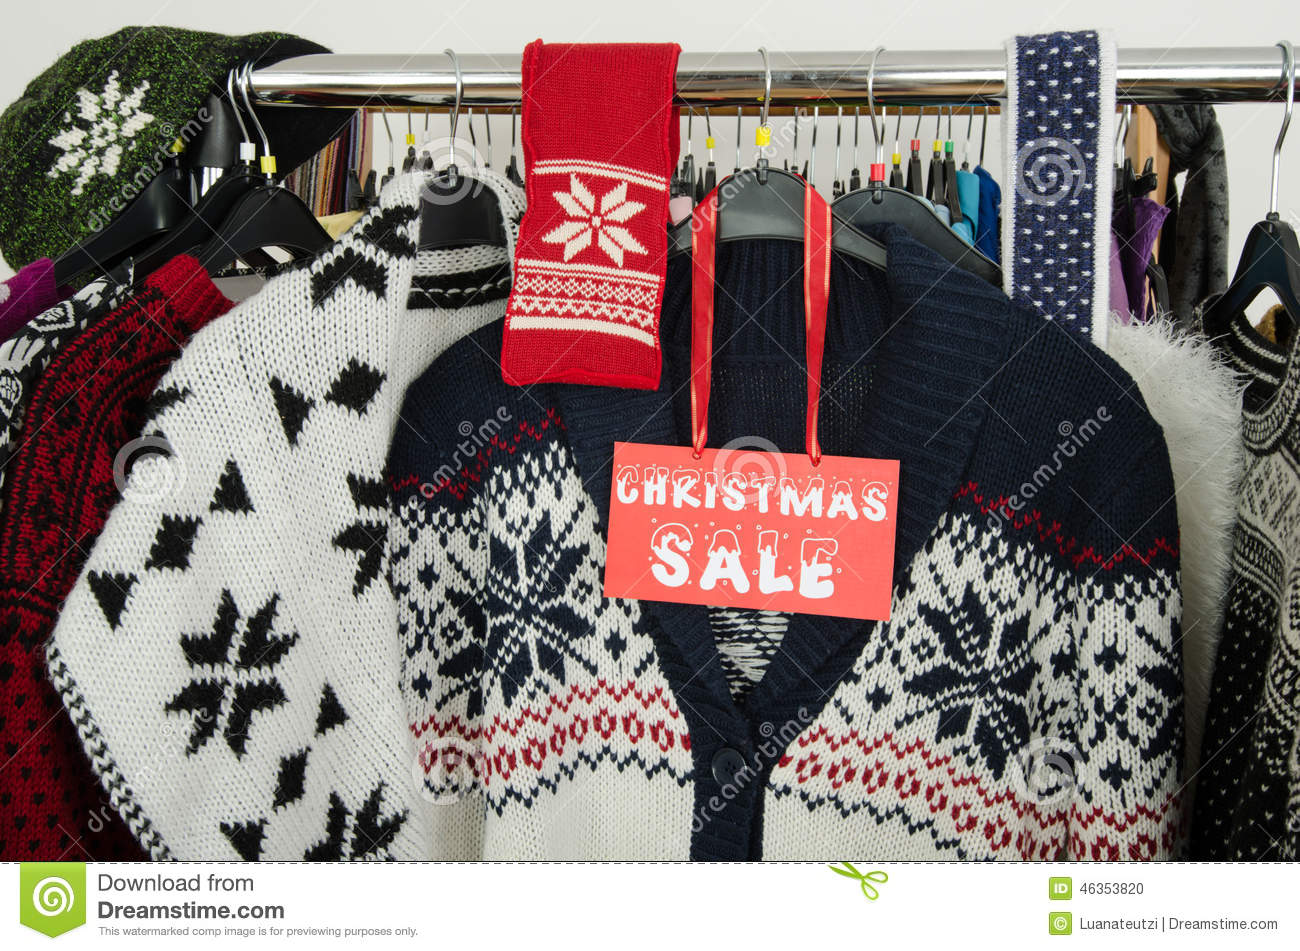 close up on a big christmas sale sign for winter clothes